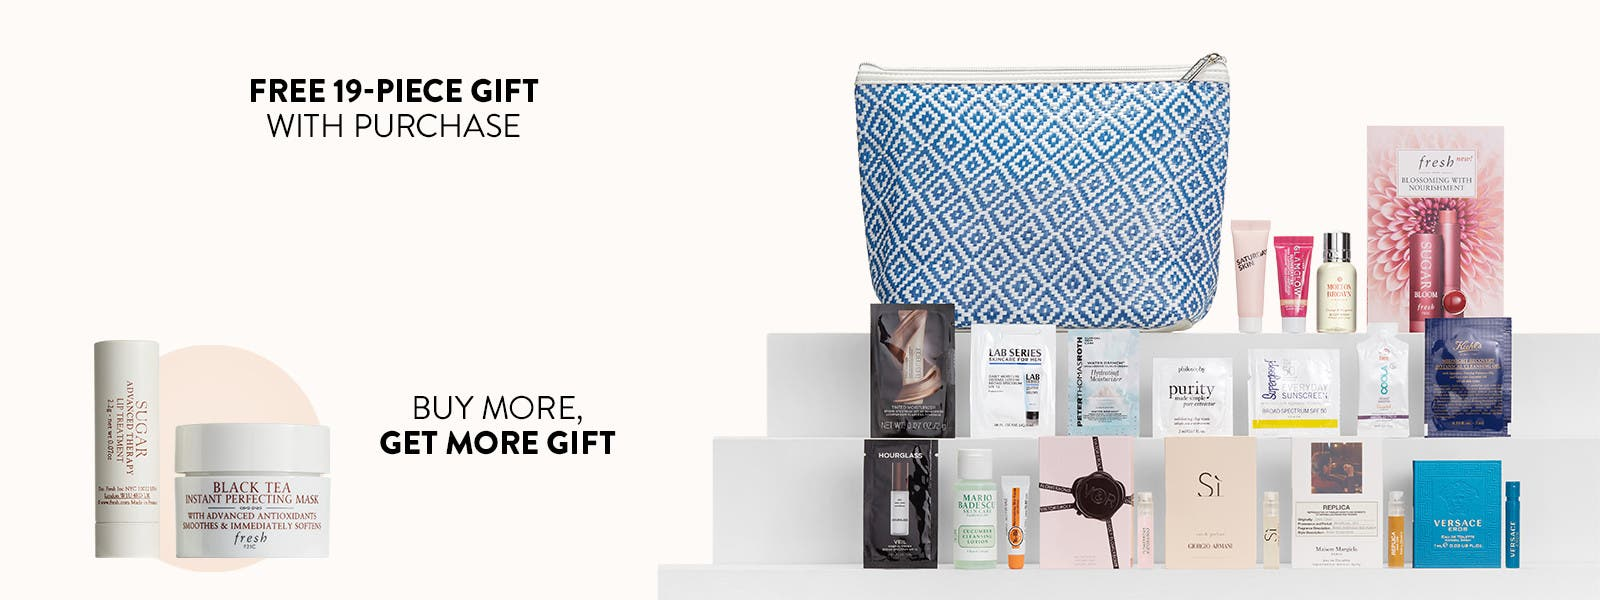 Free 19-piece gift with purchase. Buy more and get more gift.